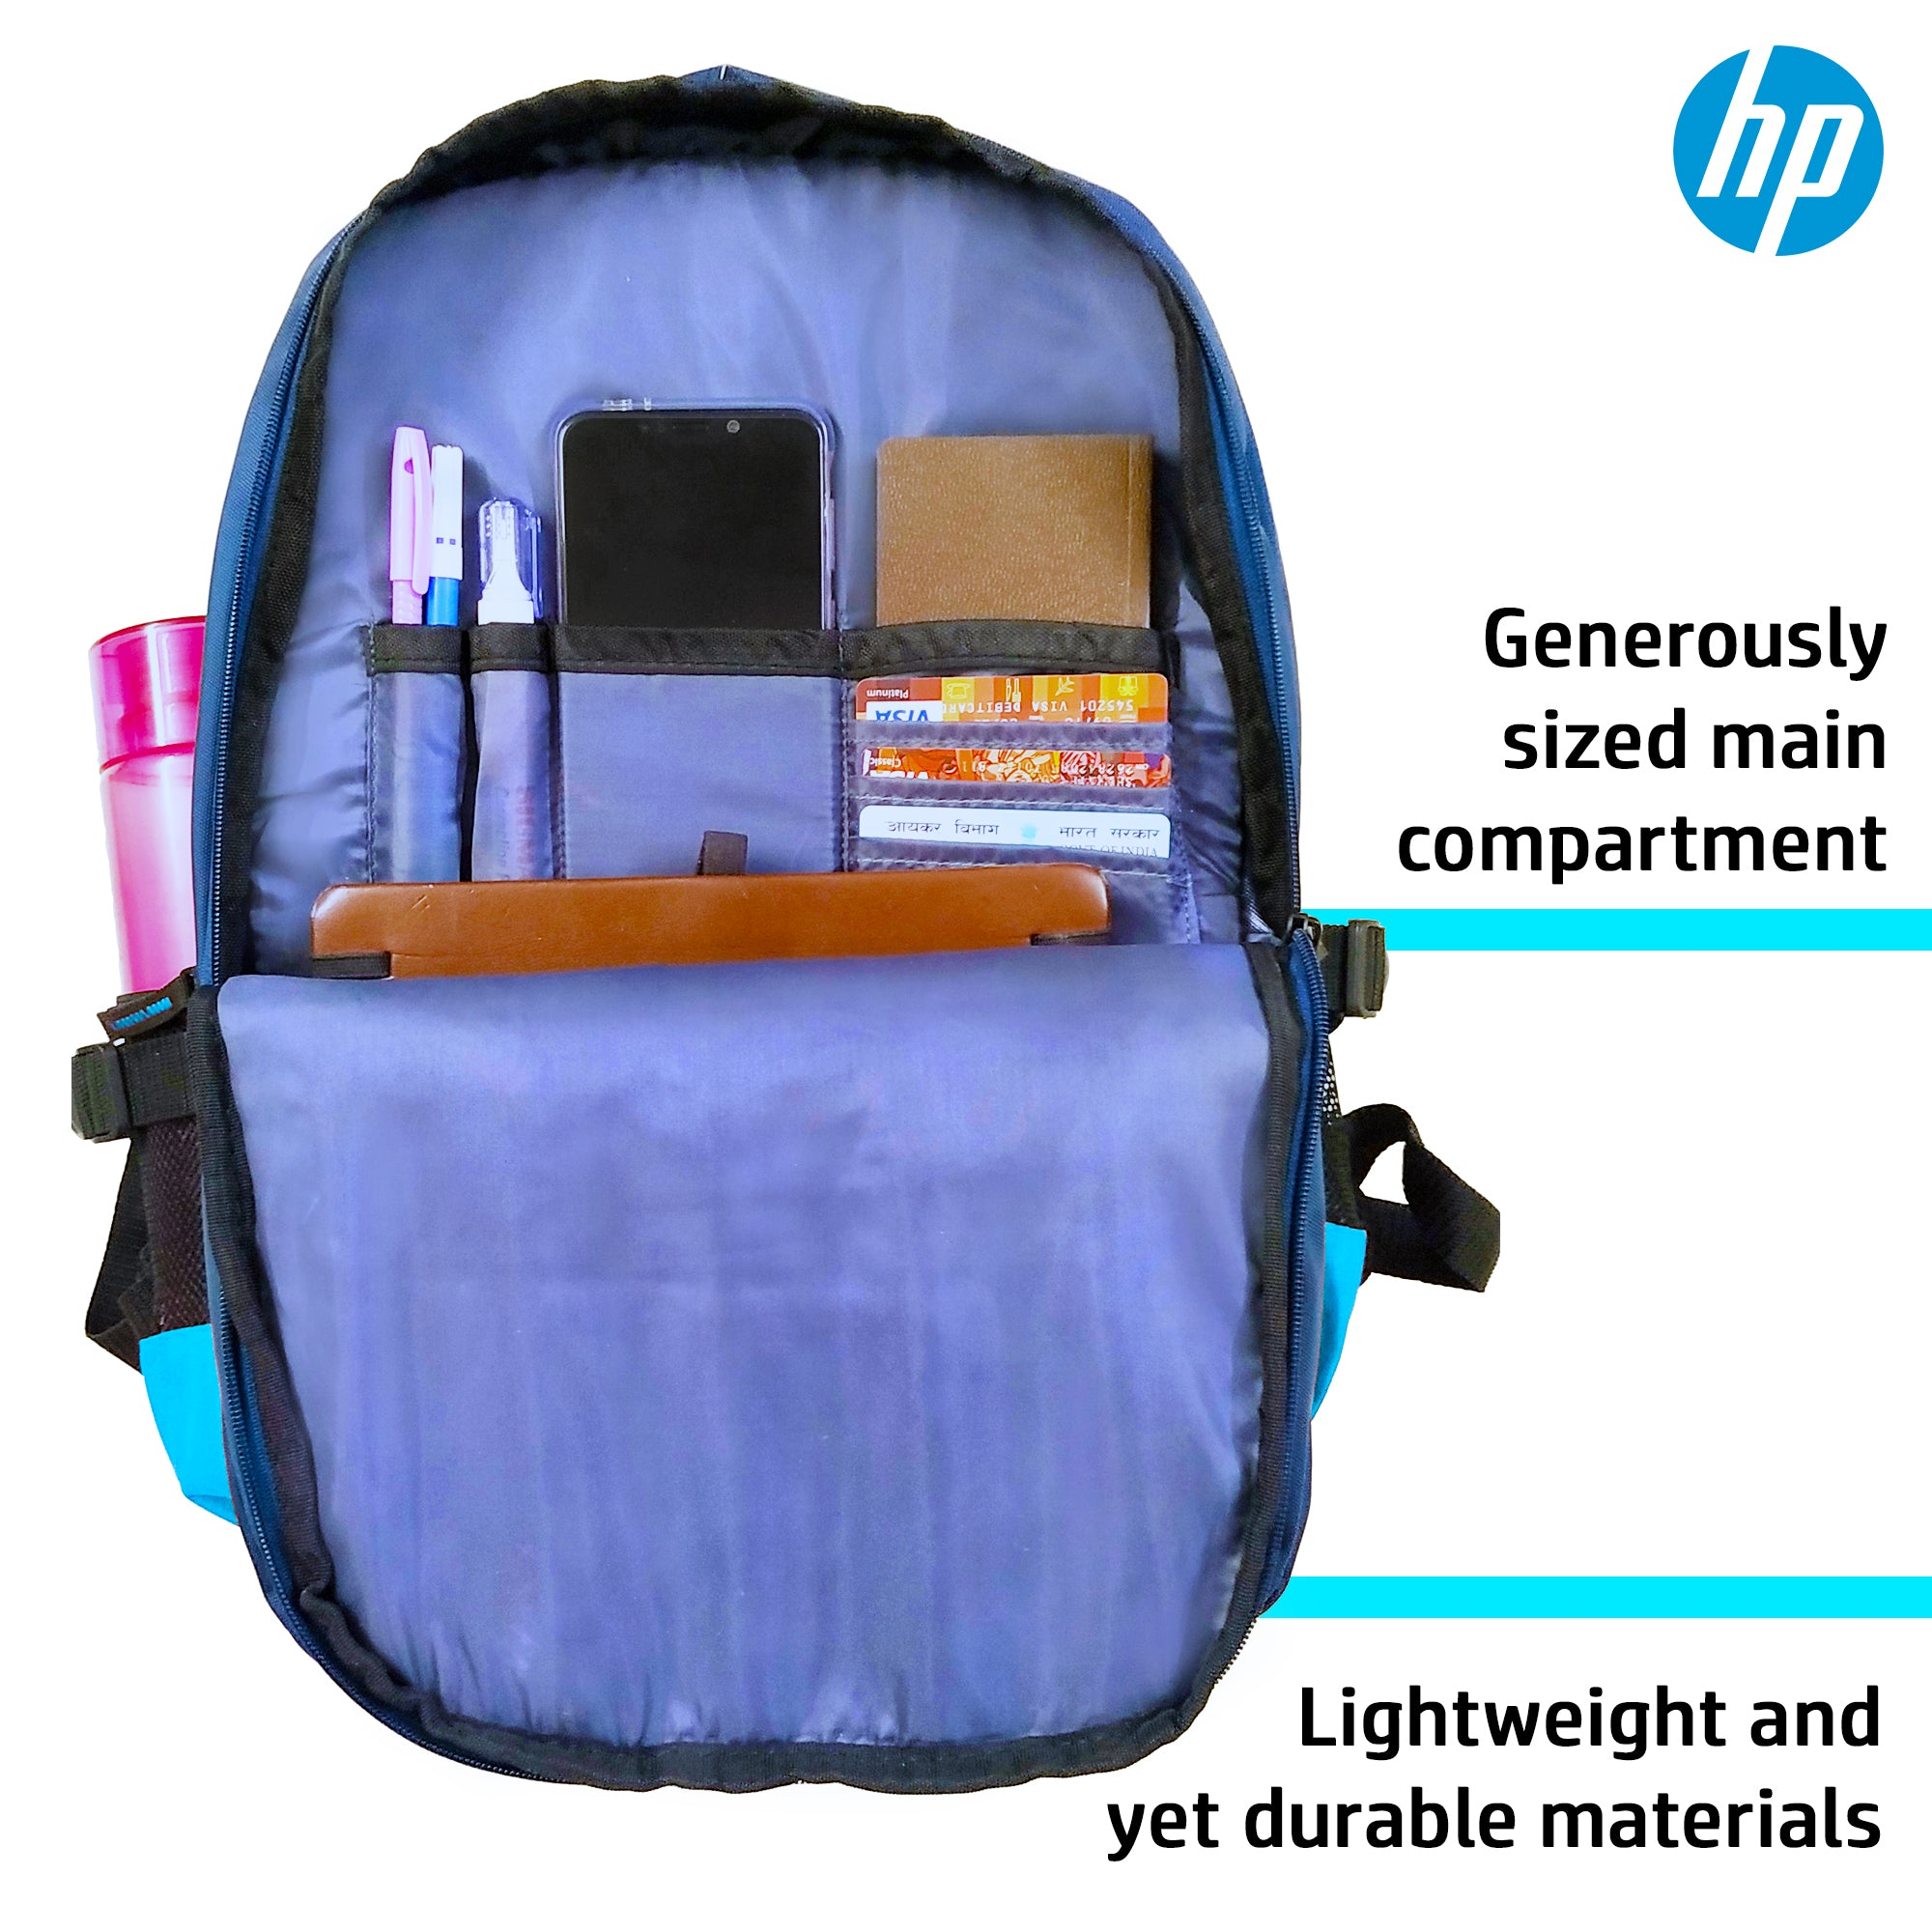 HP 15.6 Inch Diamond Laptop Backpack (Green, 4ZG31PA)